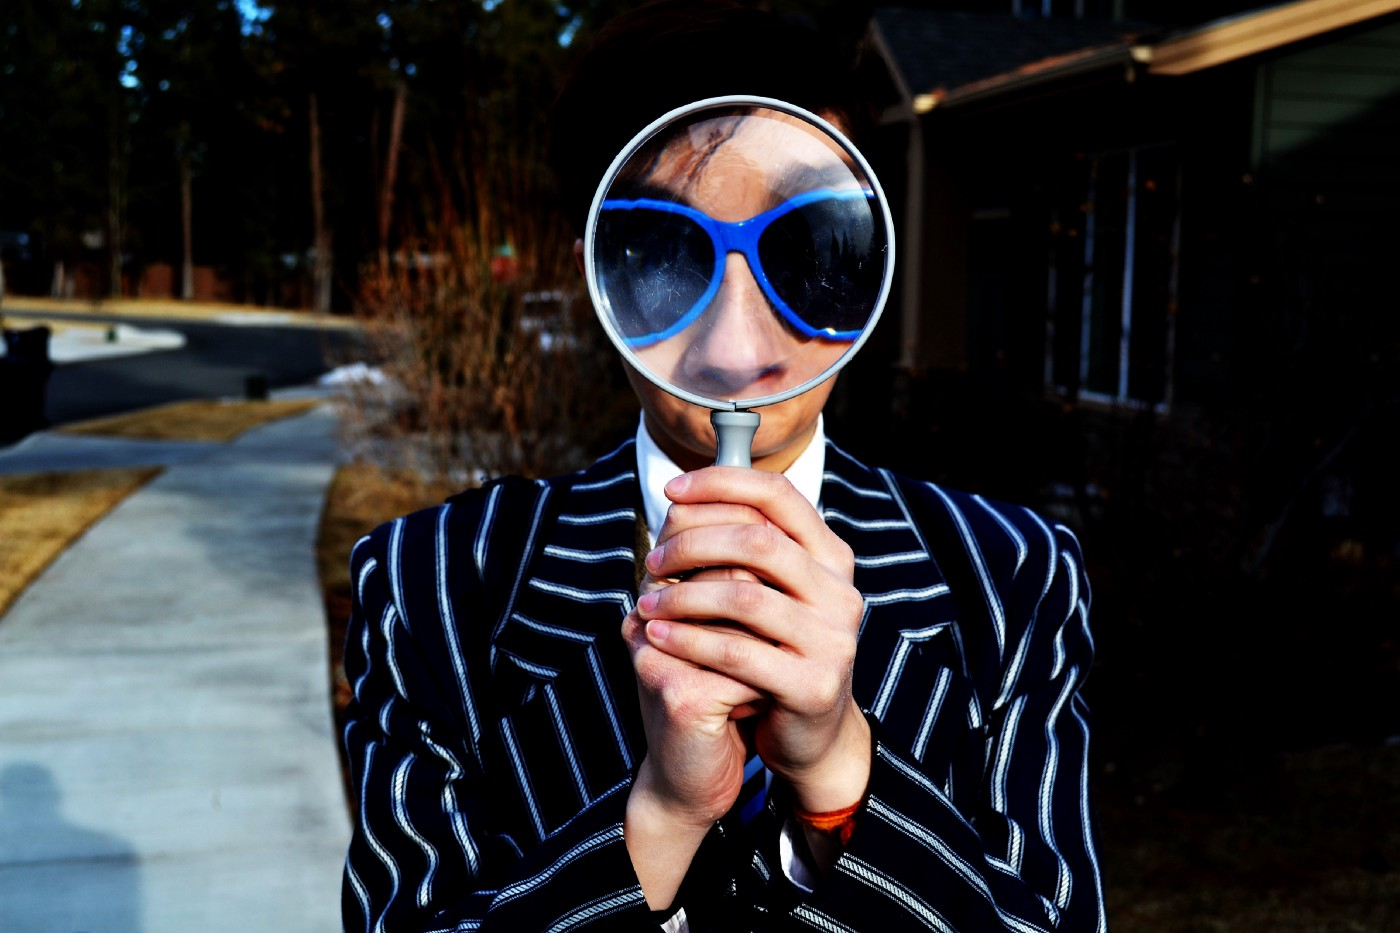 A person who is wearing black suit and black spectacle cornered with blue colour, holding a magnifier lens from both hands.